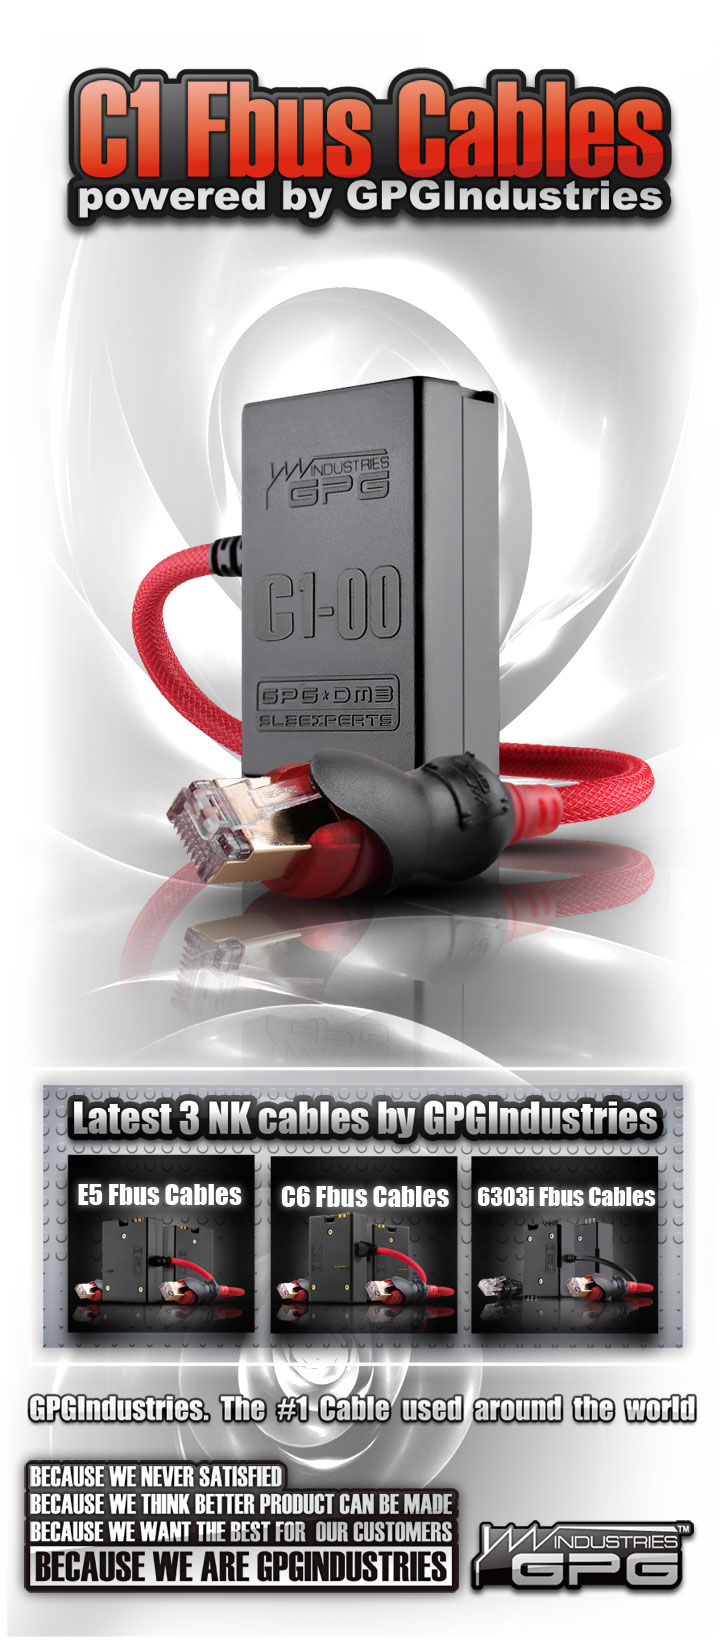 2010 08 27 C1 fbus Cable 725